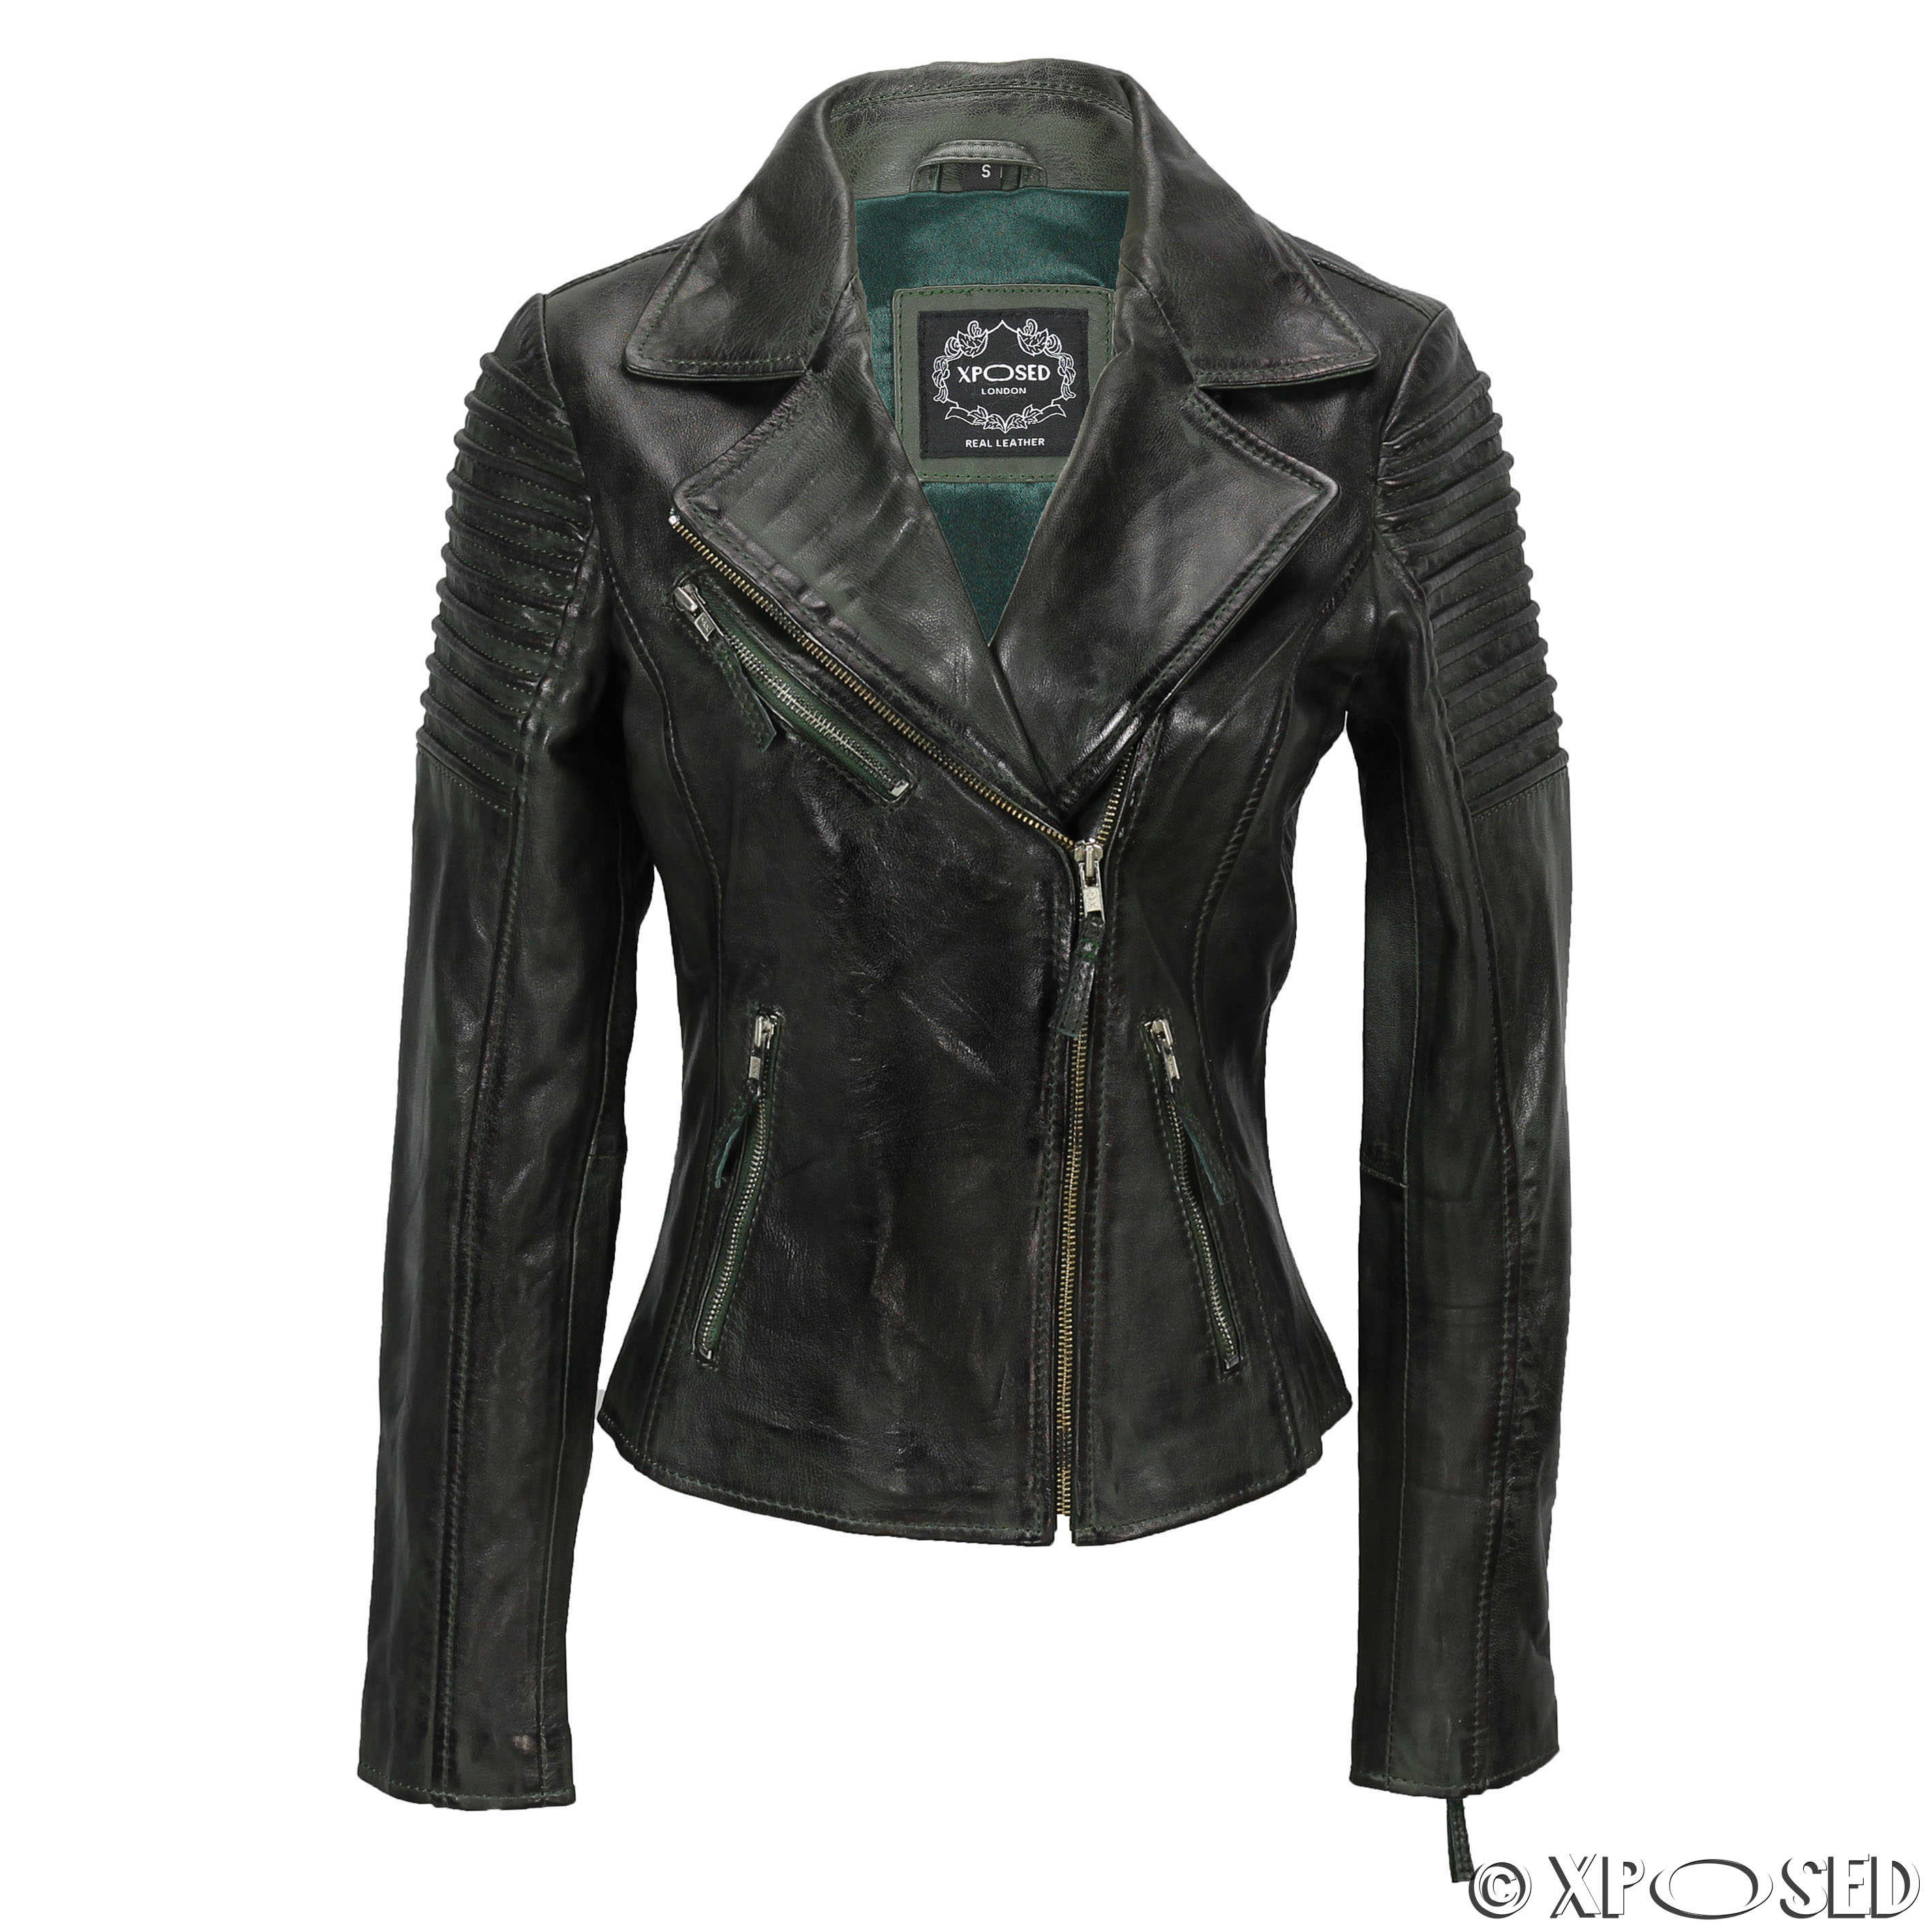 50% Off Women's Motorcycle Jackets - Select from Biker Jackets for ladies, from leather to textile.